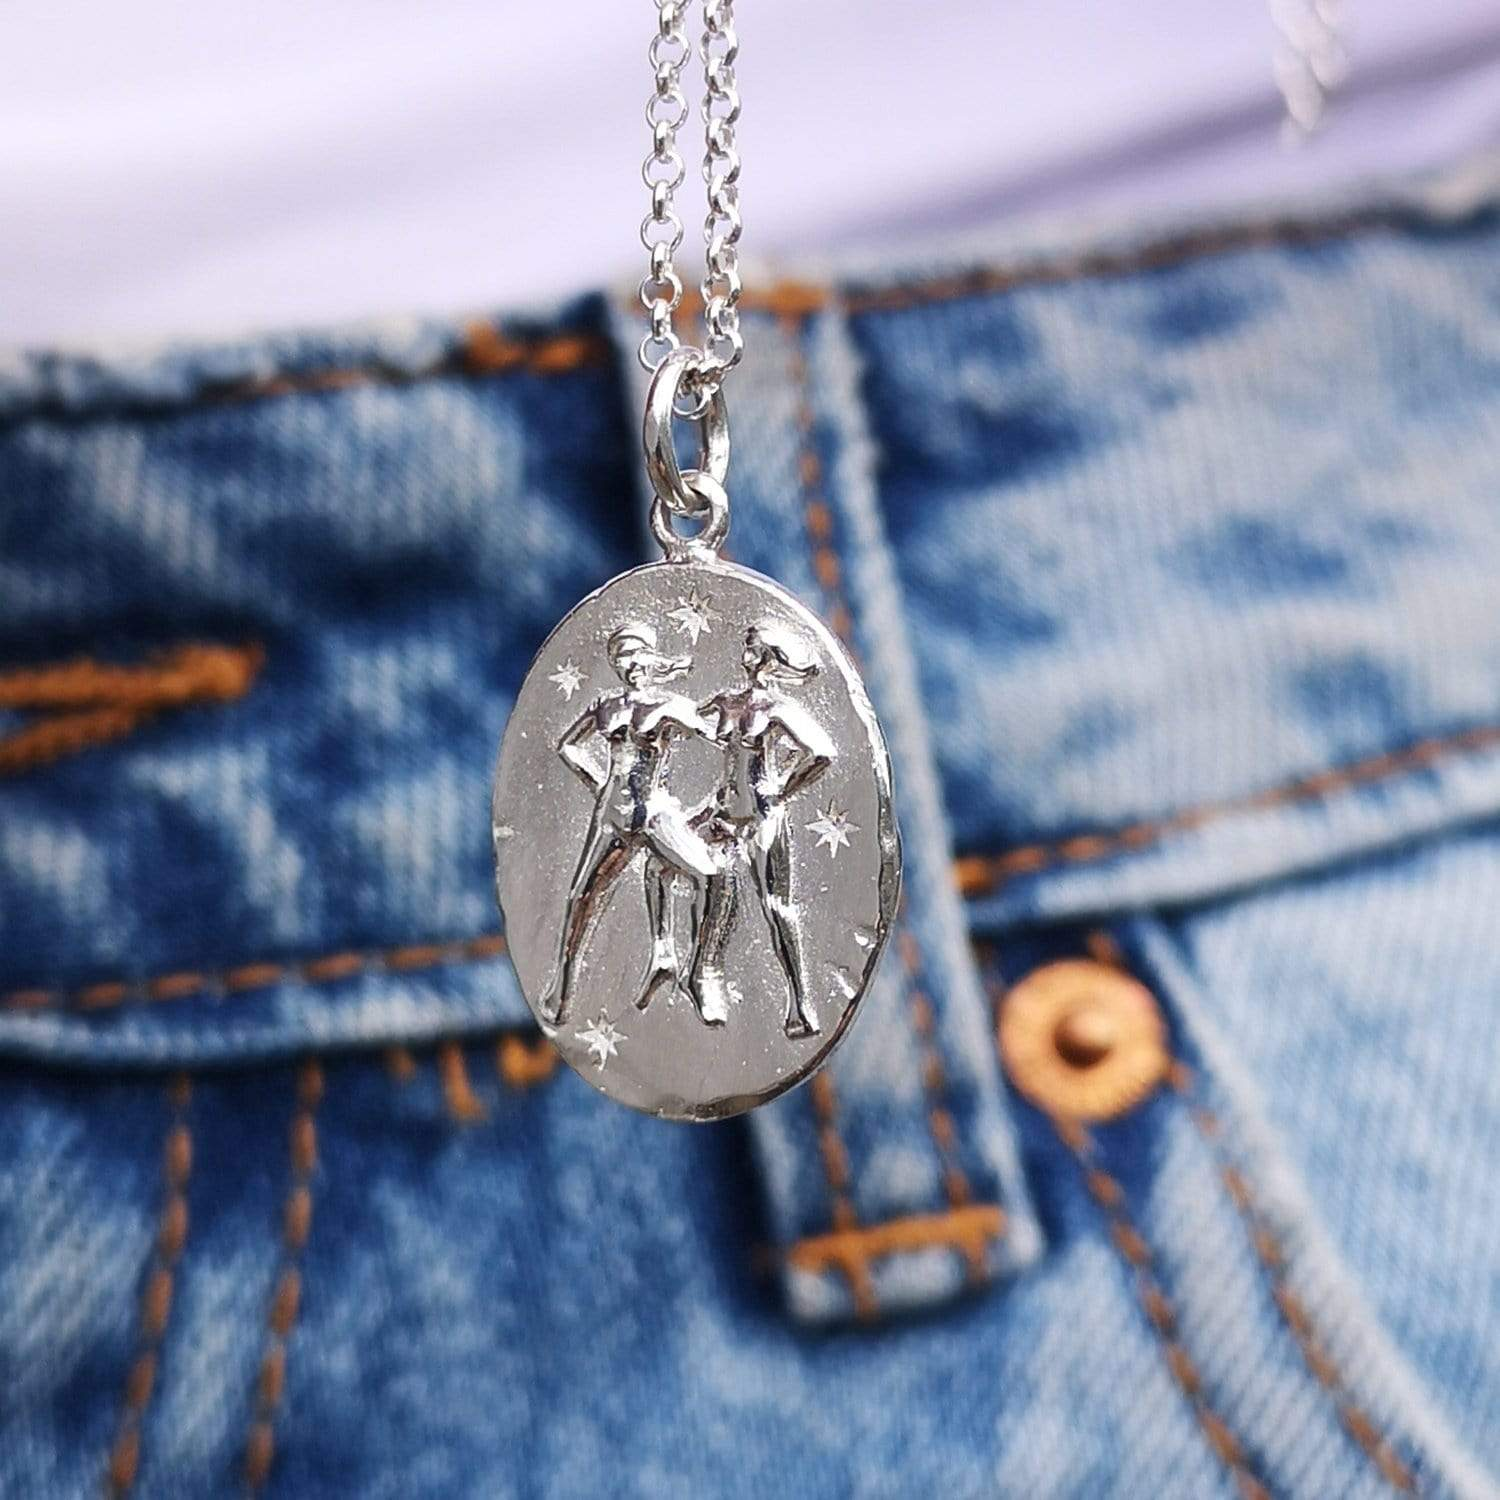 Personalised Silver Gemini Zodiac Necklace - Lily Charmed